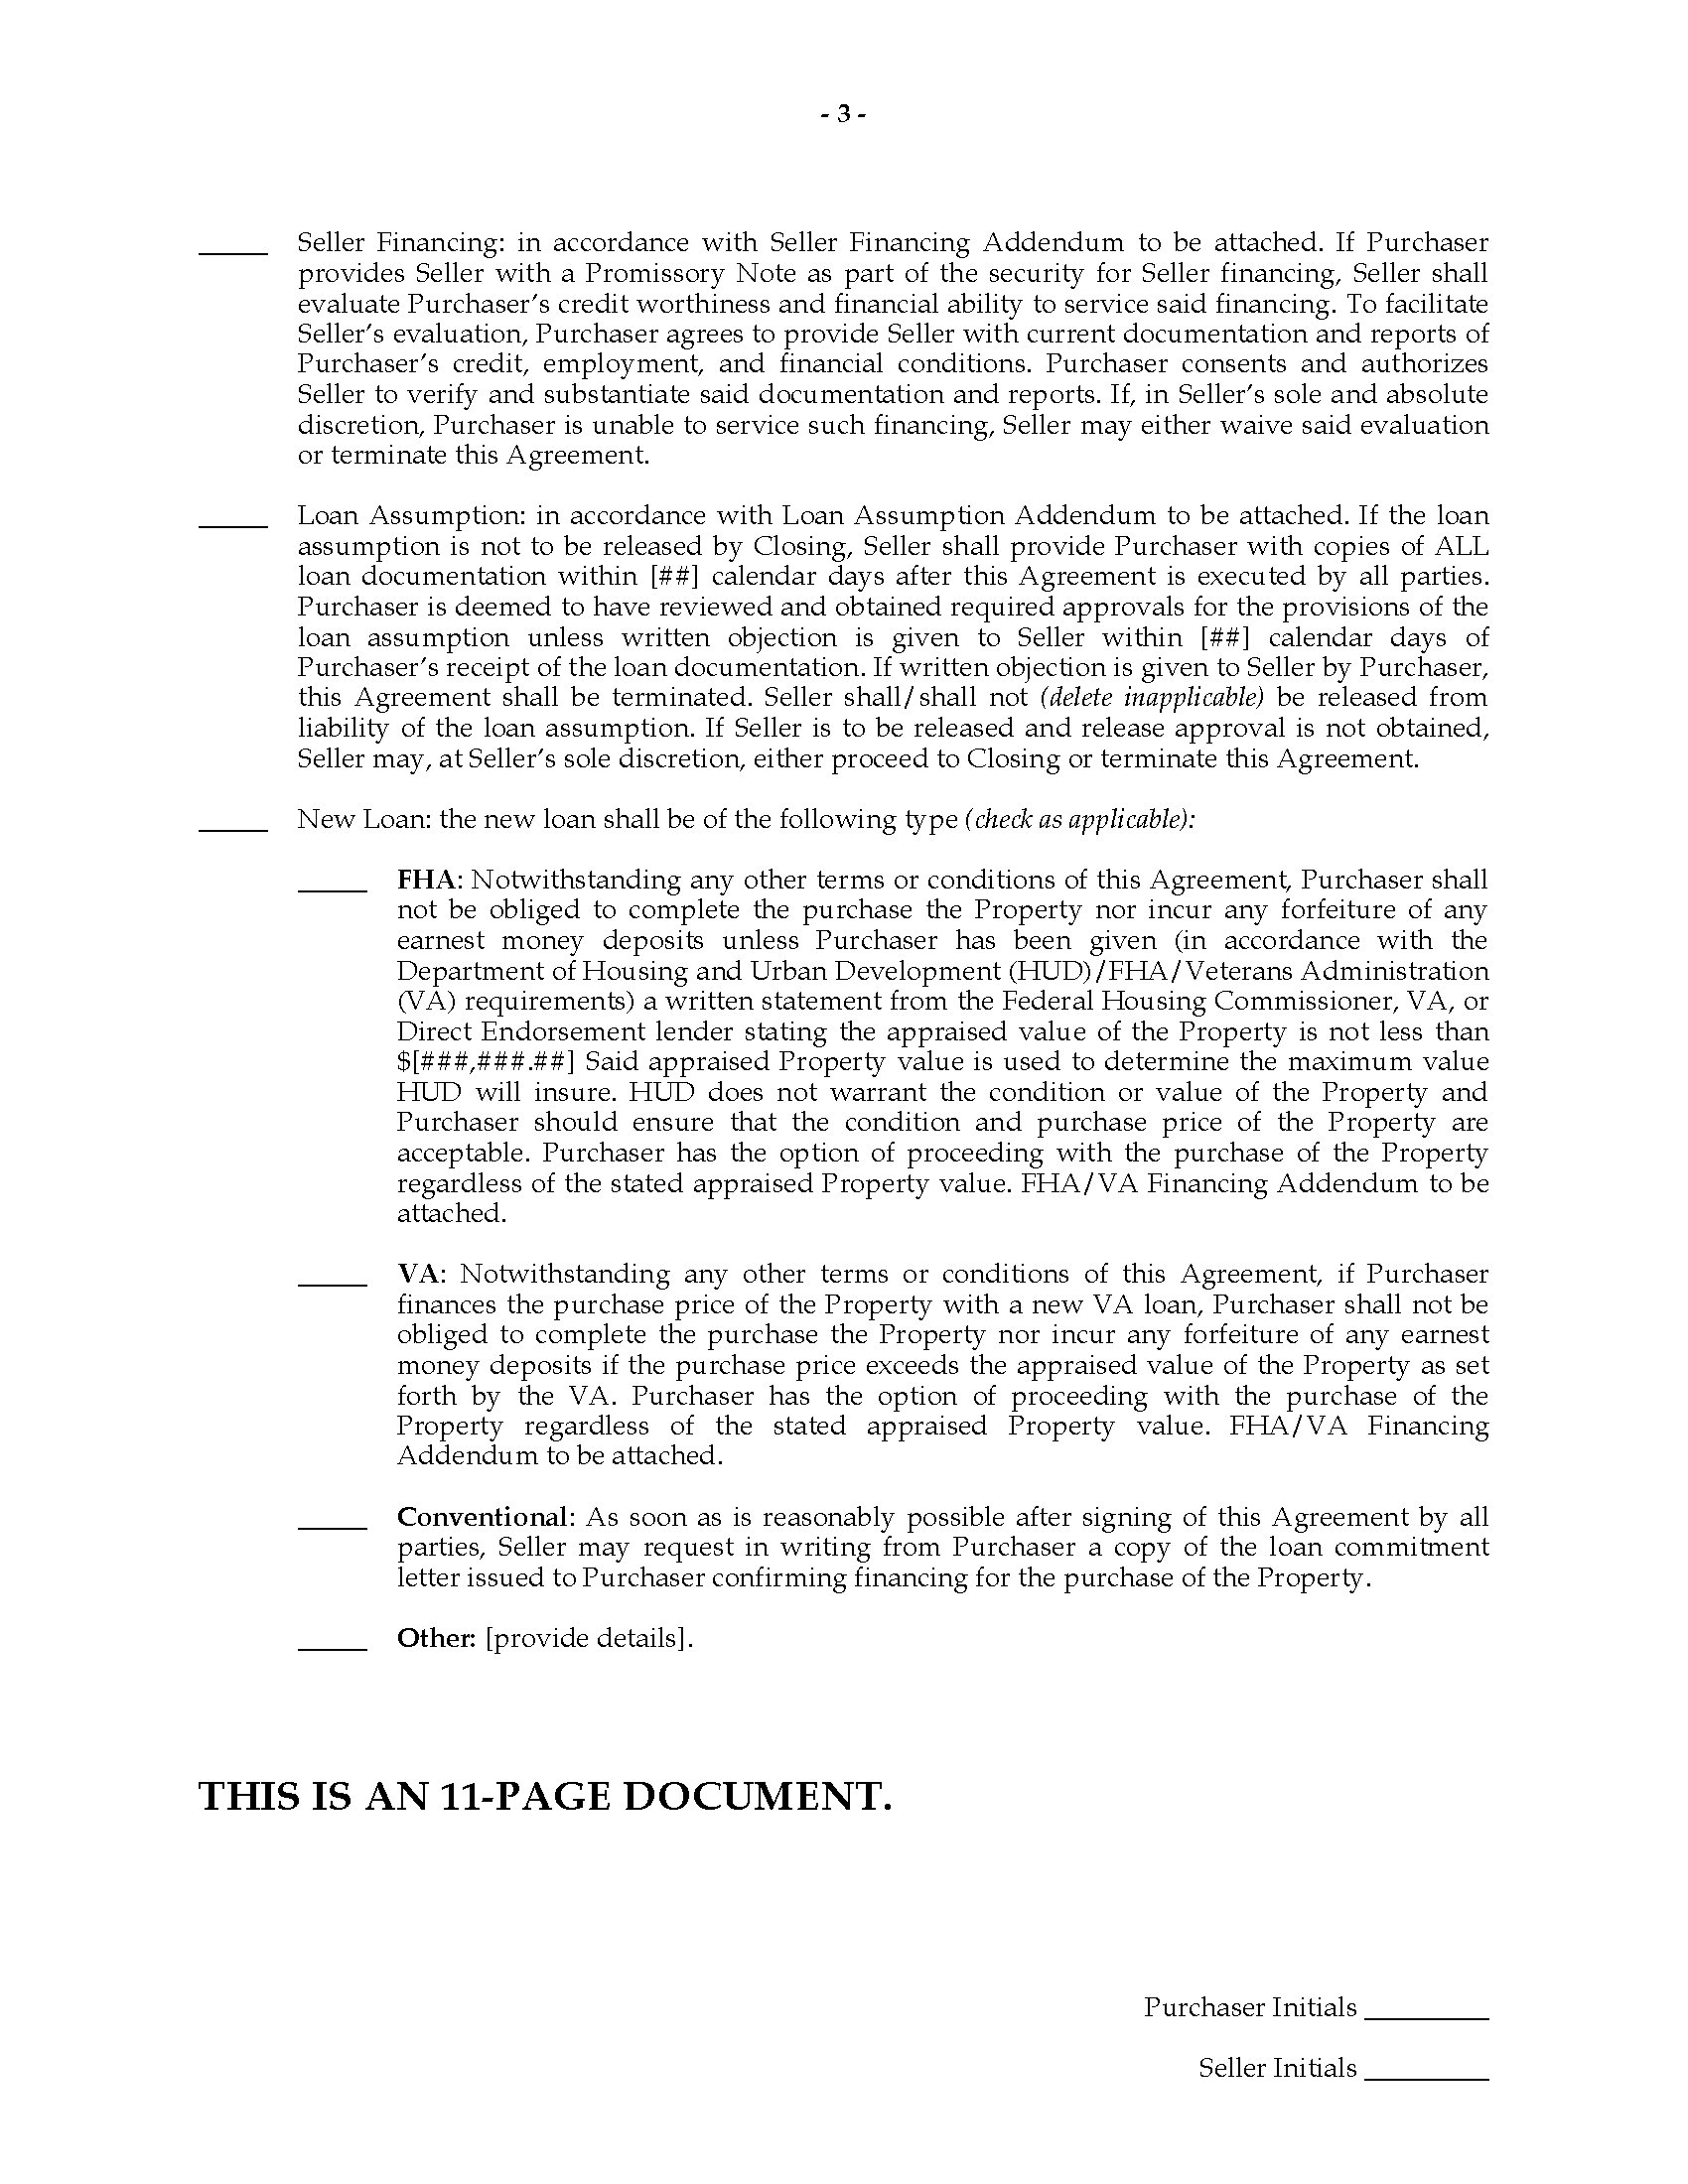 North Carolina Real Estate Purchase And Sale Agreement Legal Forms And Business Templates Megadox Com